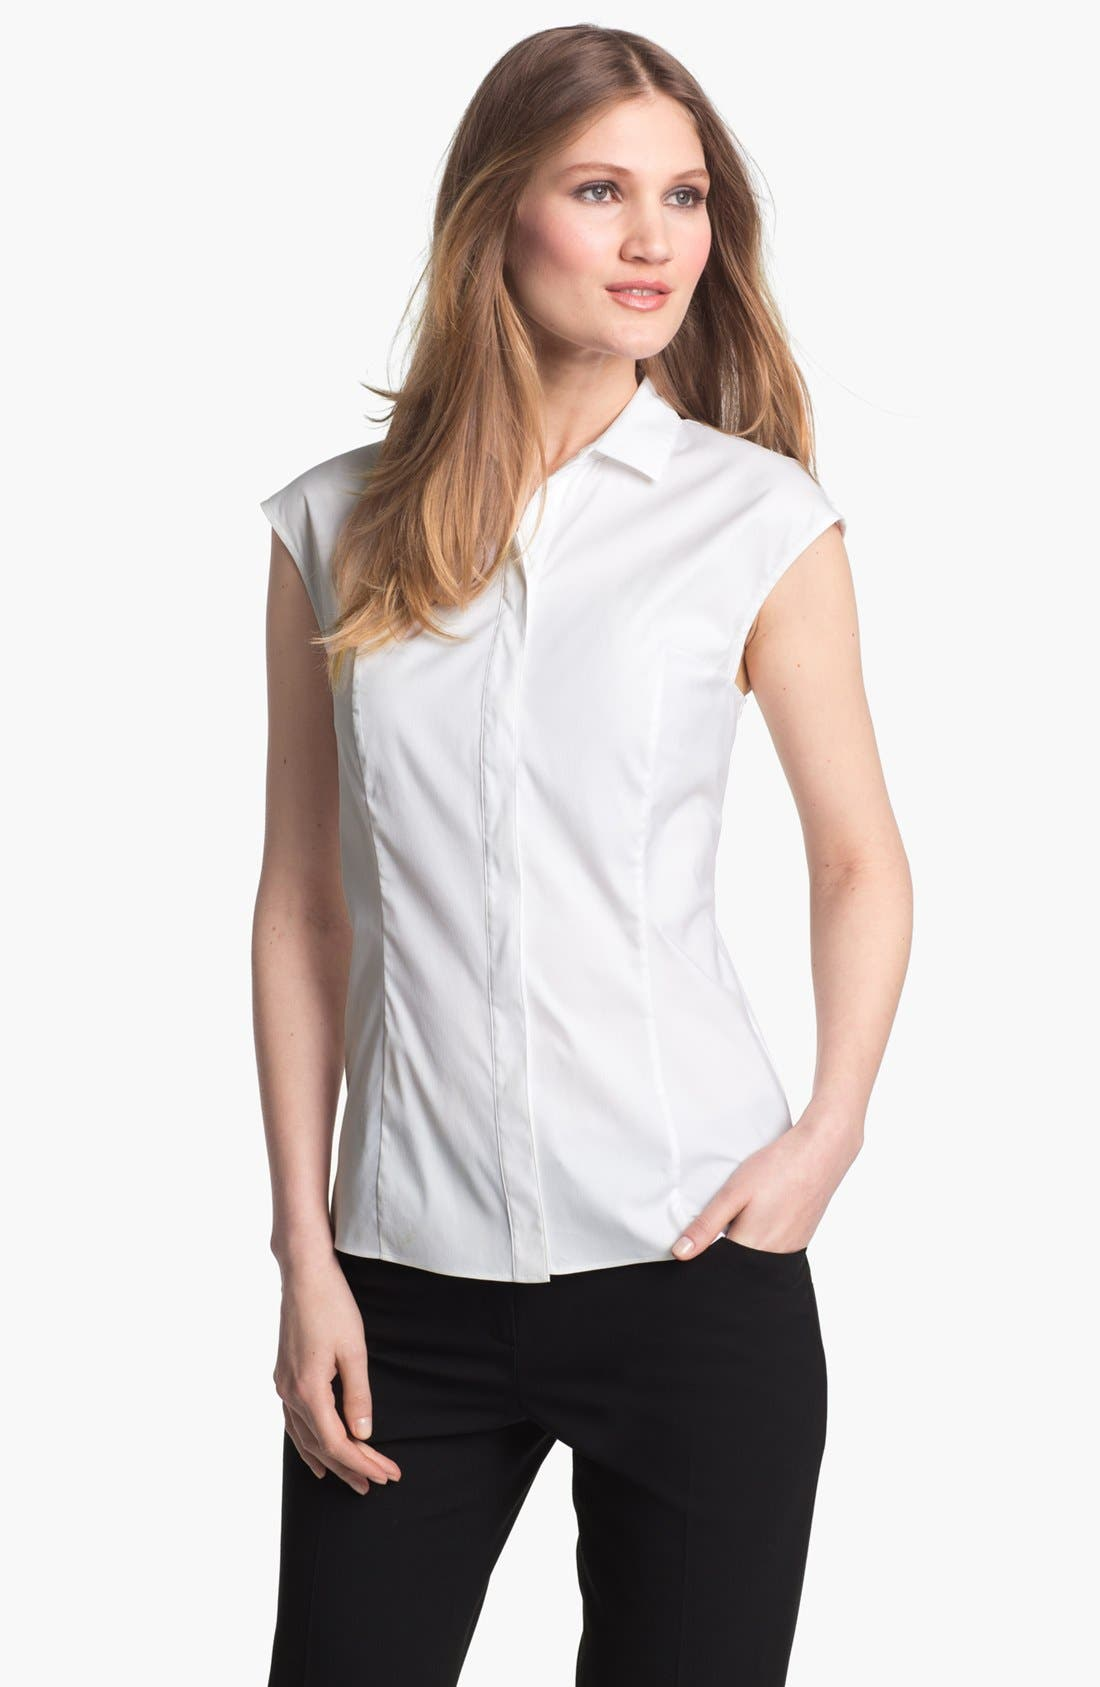 Alternate Image 1 Selected - Lafayette 148 New York 'Excursion Stretch' Short Sleeve Blouse